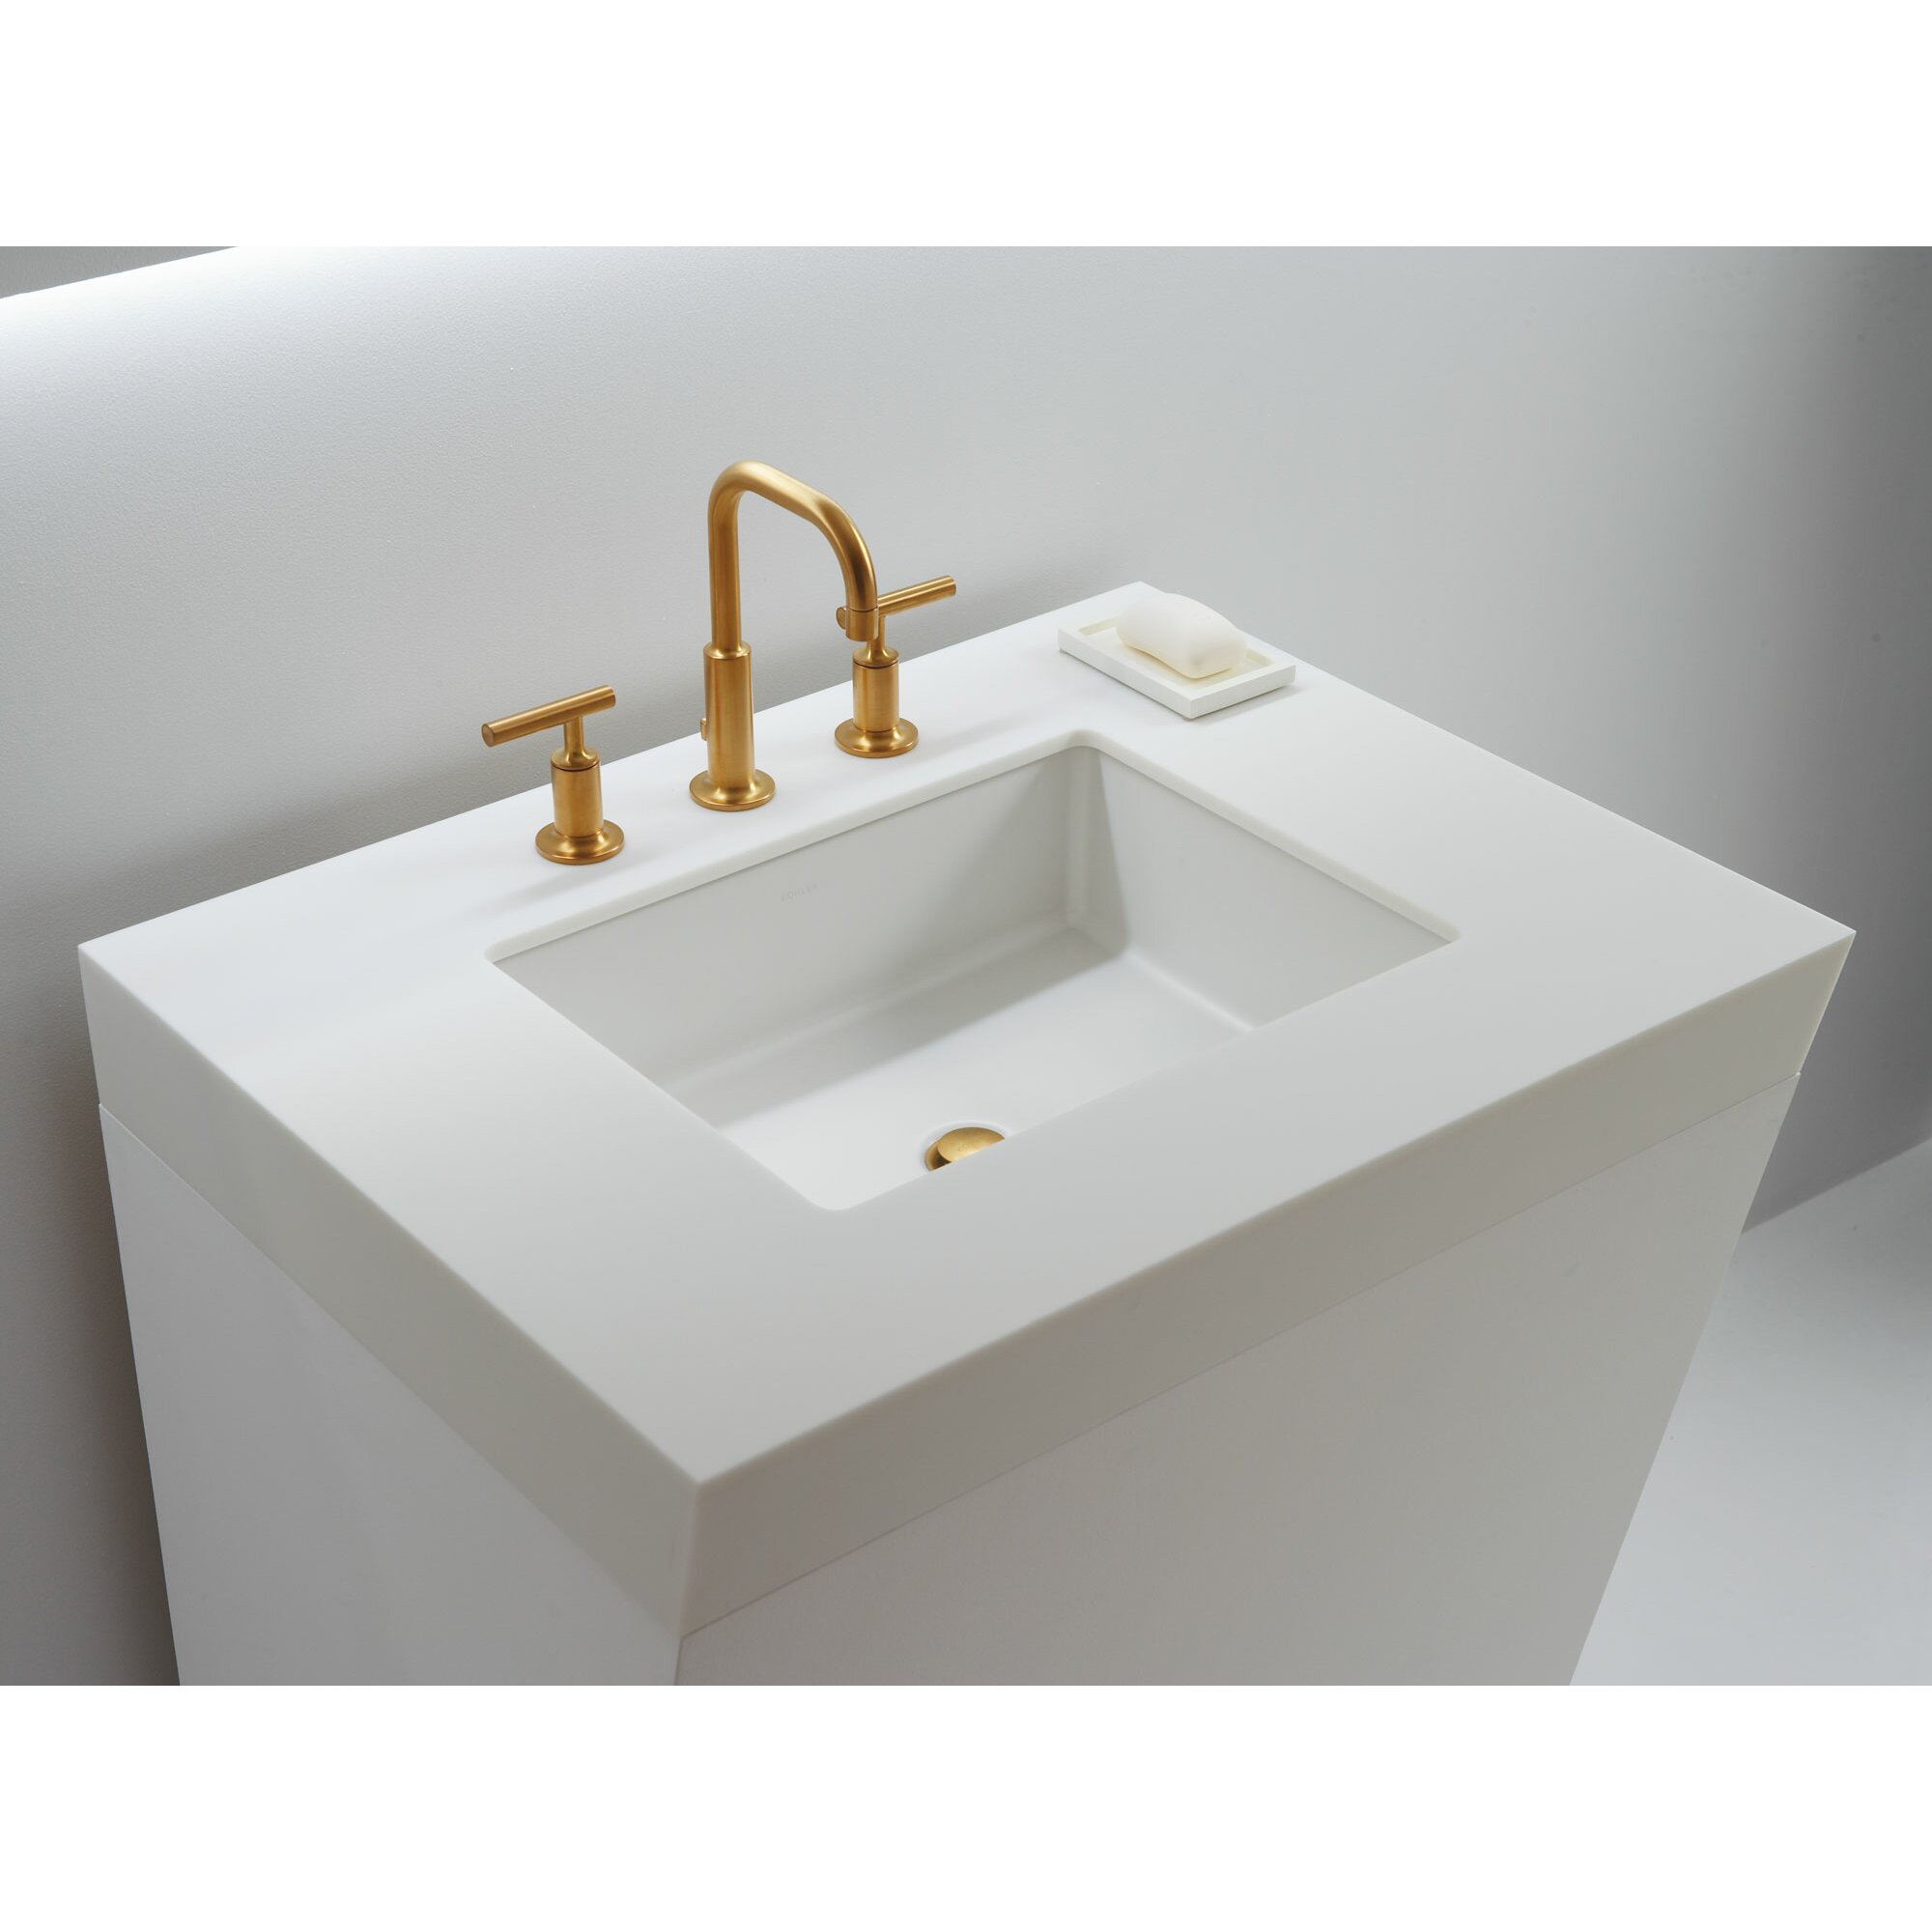 rectangular bathroom sink topmount kohler verticyl rectangular undermount bathroom sink with 20115